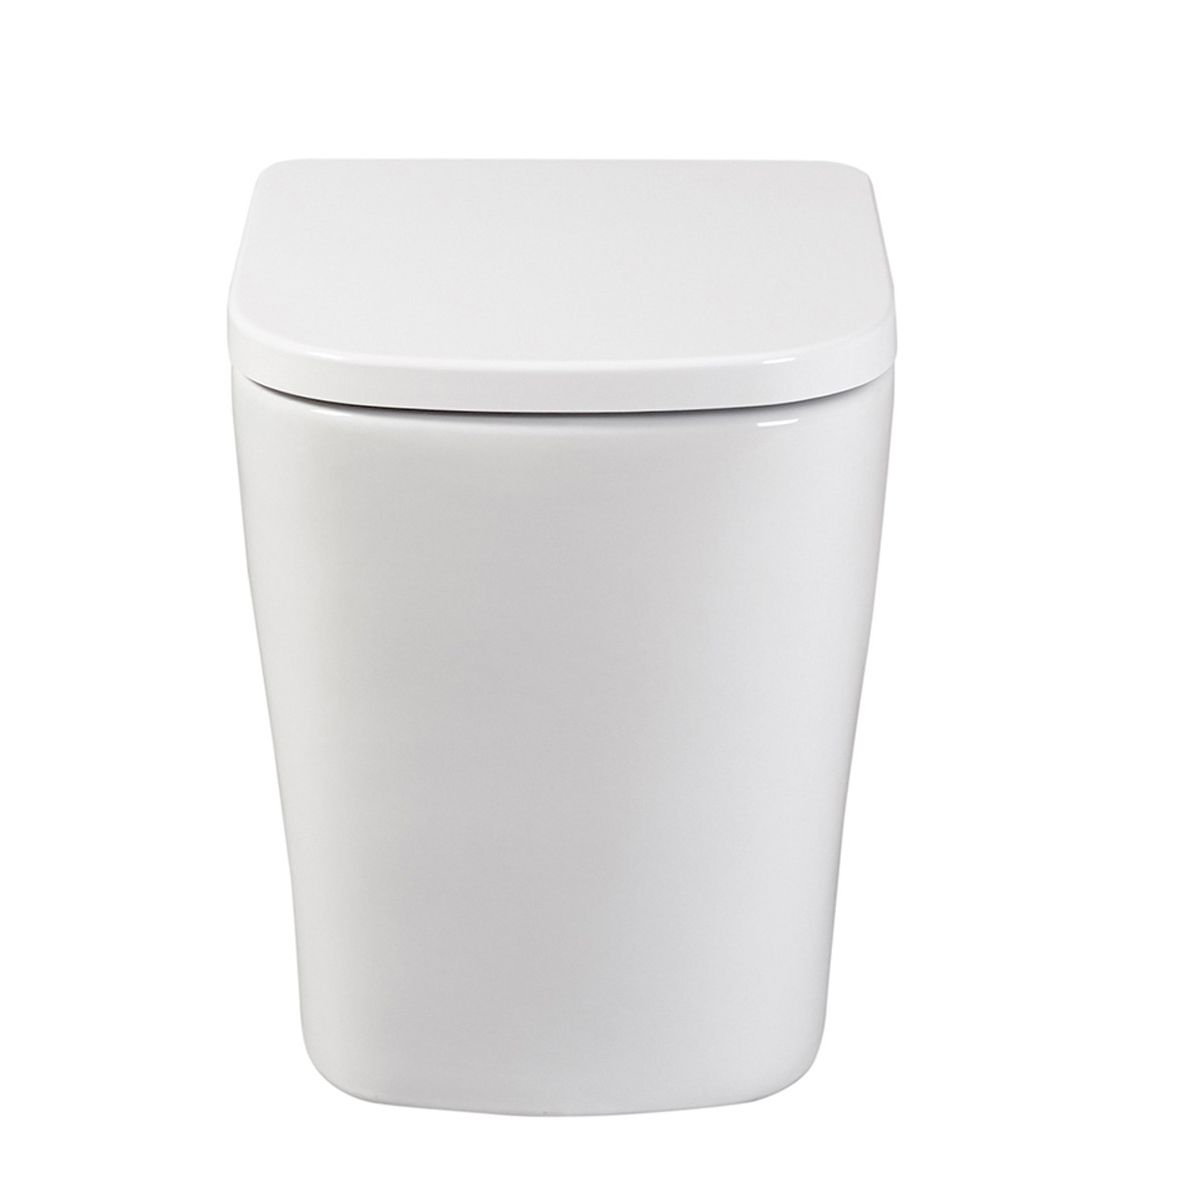 Frontline Modo Back-to-Wall Toilet with Soft Close Seat